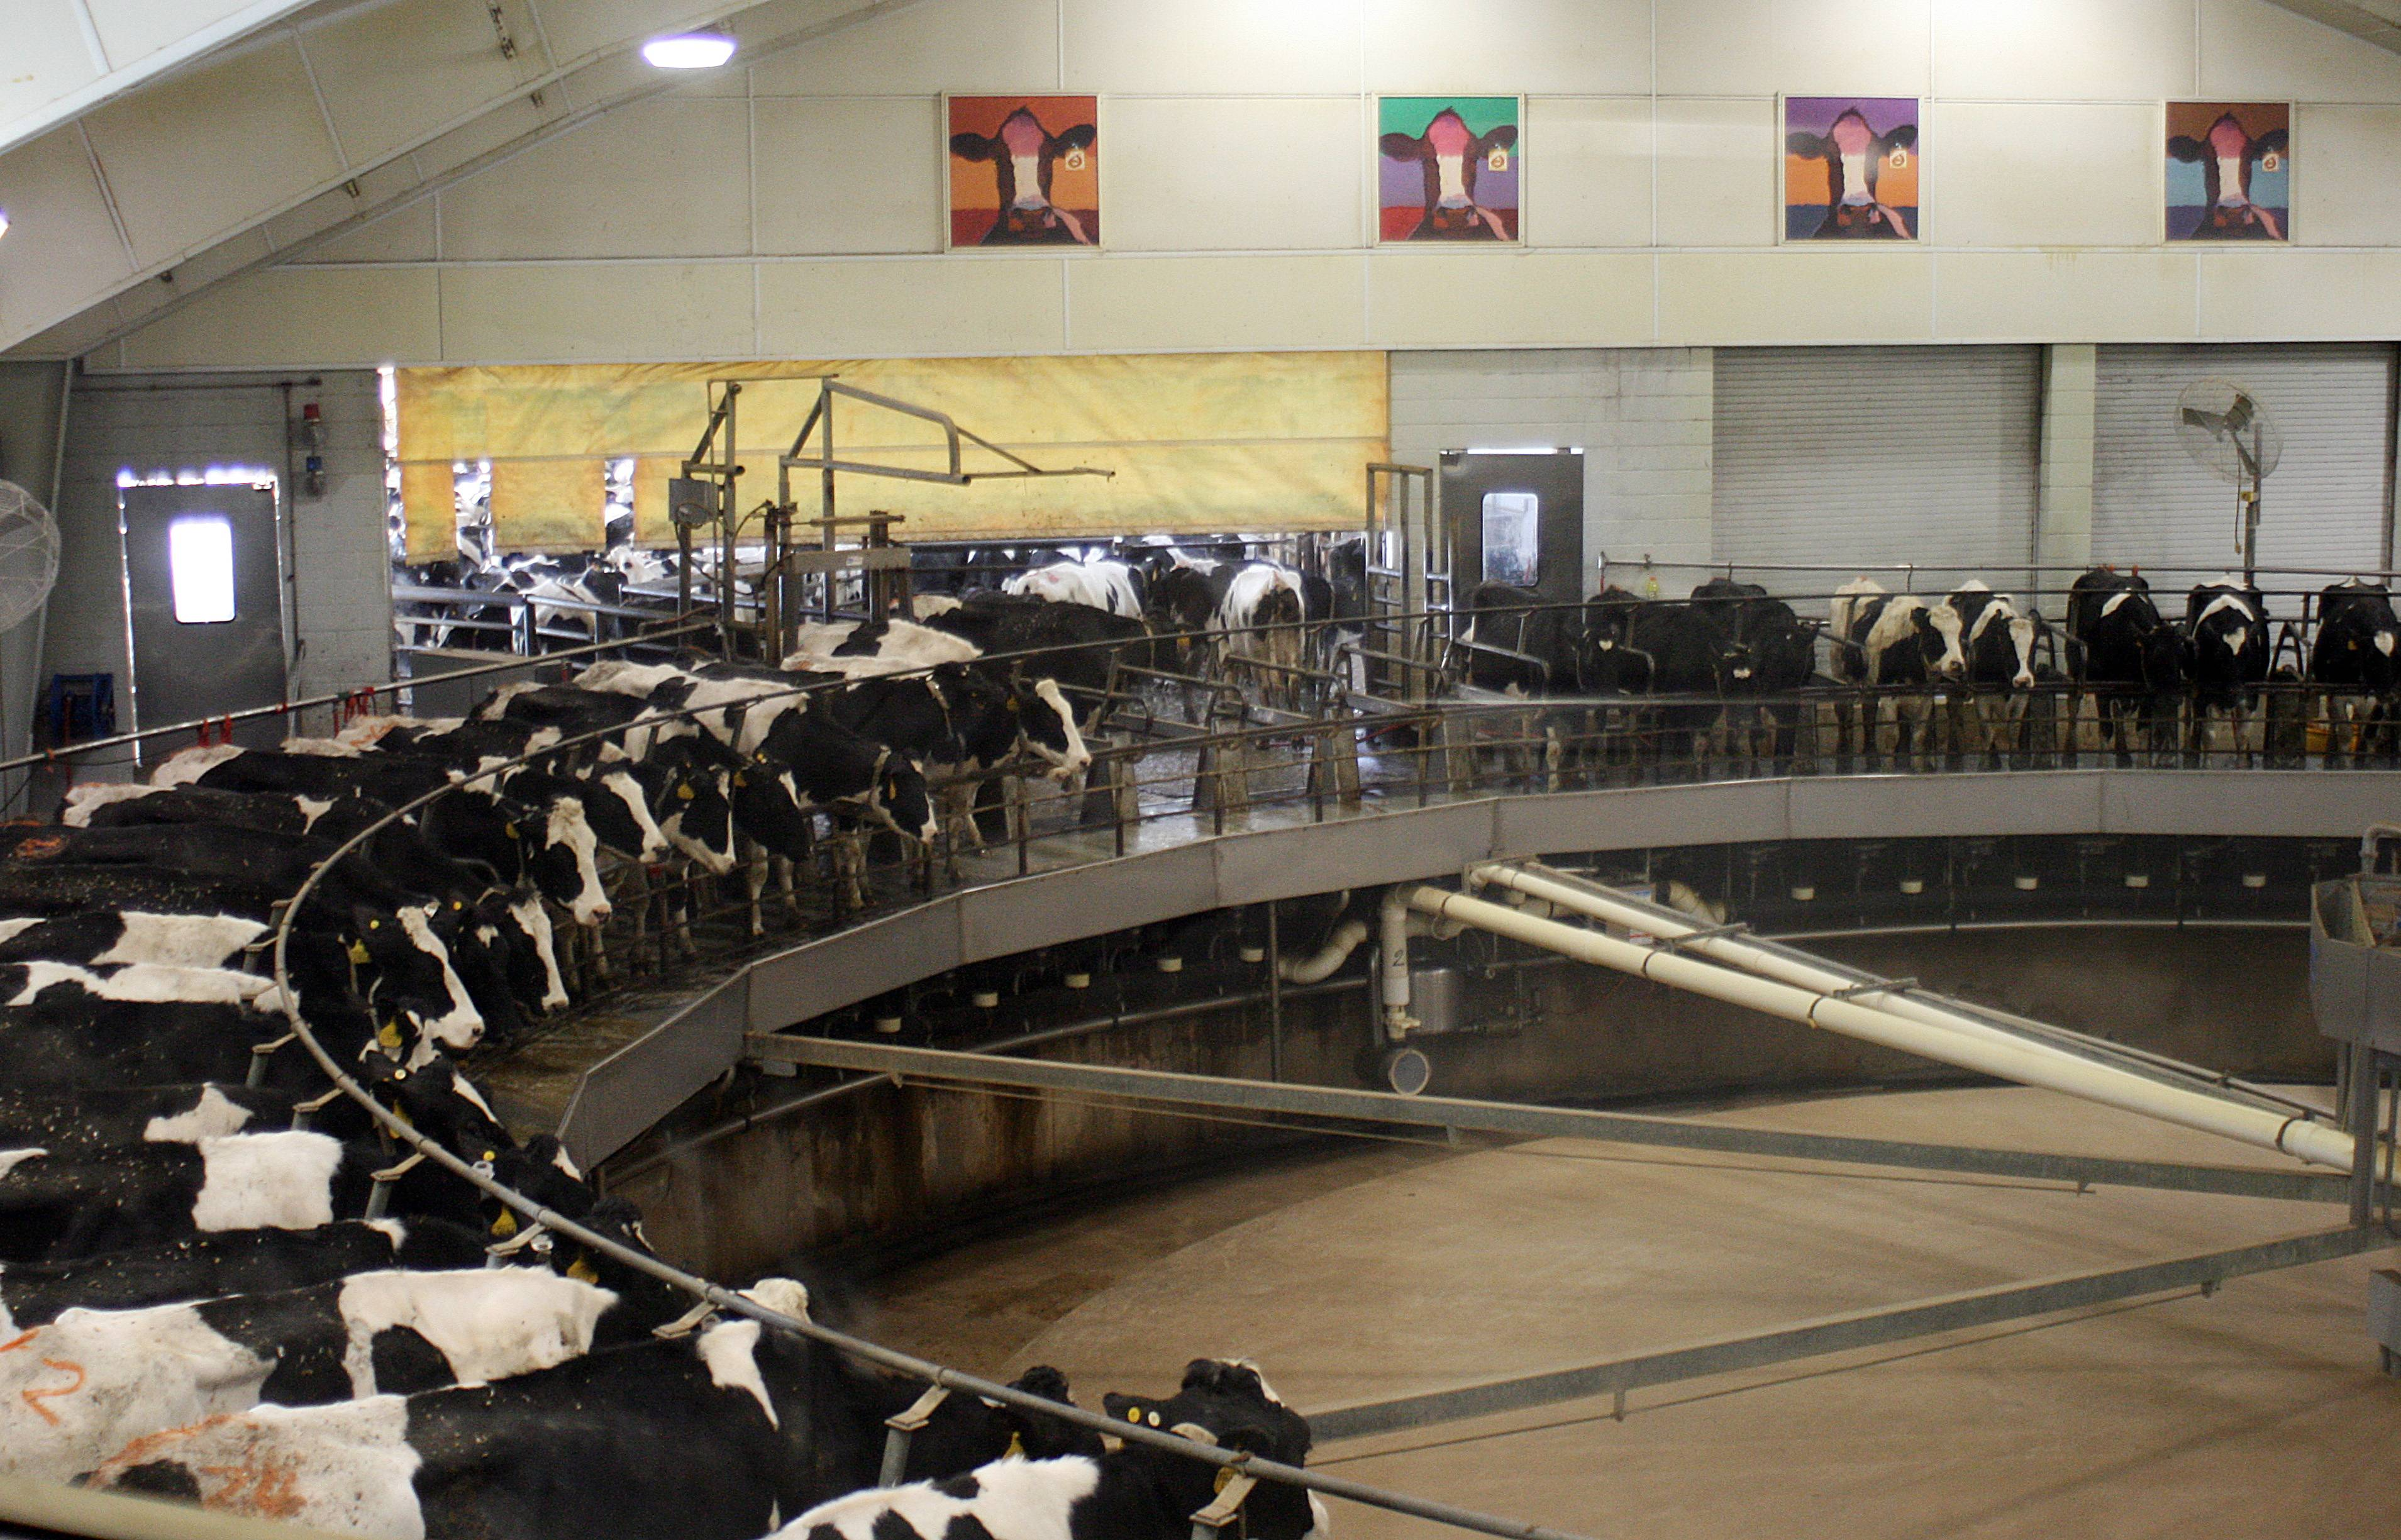 Dairy cows ride a rotating milking machine at Fair Oaks Farms, in Fair Oaks, Ind.